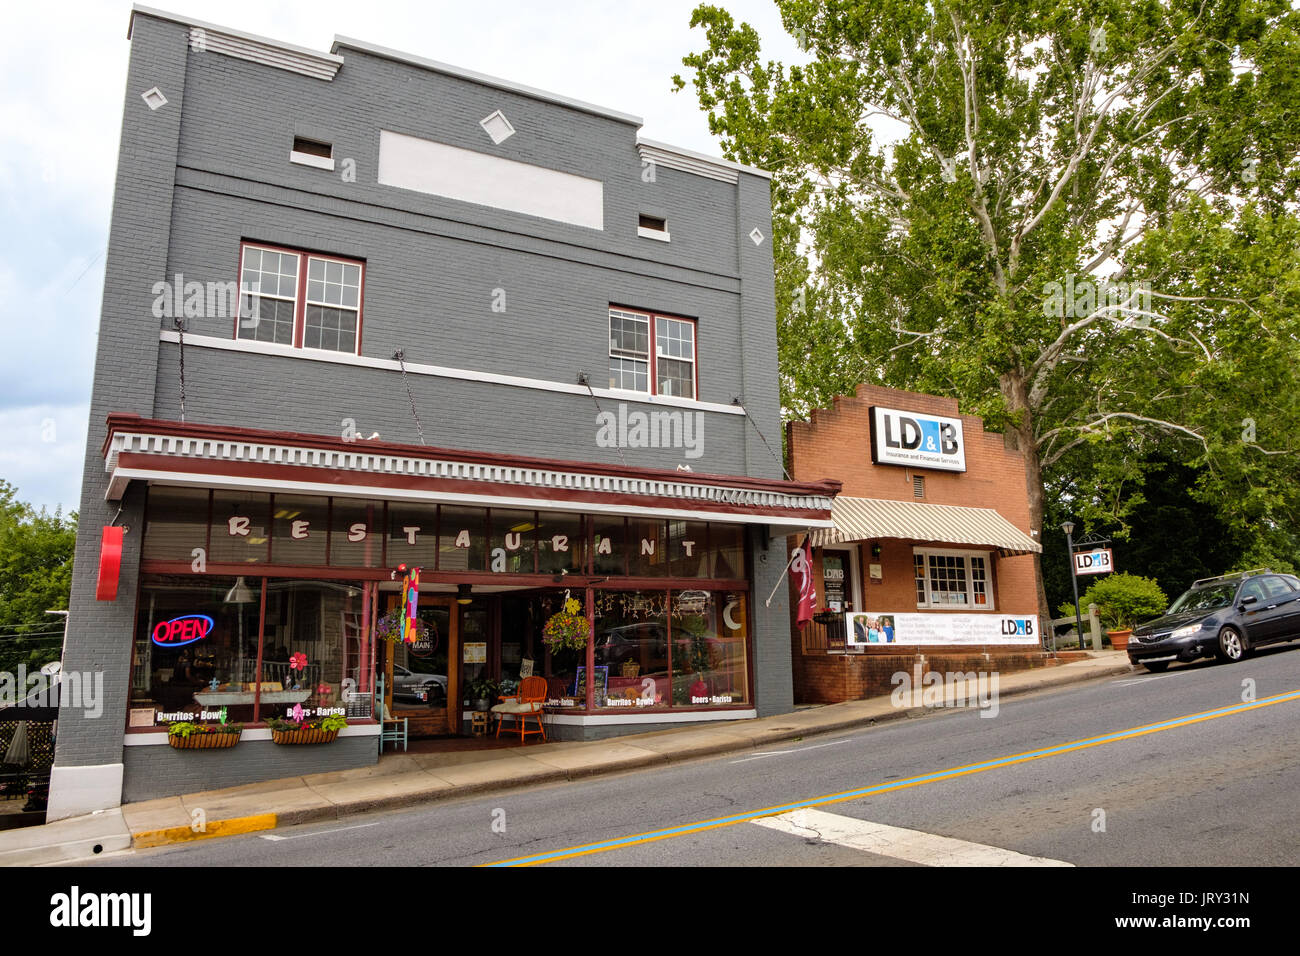 55 East Main Street Brew House & Grill, Hudson Hardware Building, Luray, Virginia - Stock Image